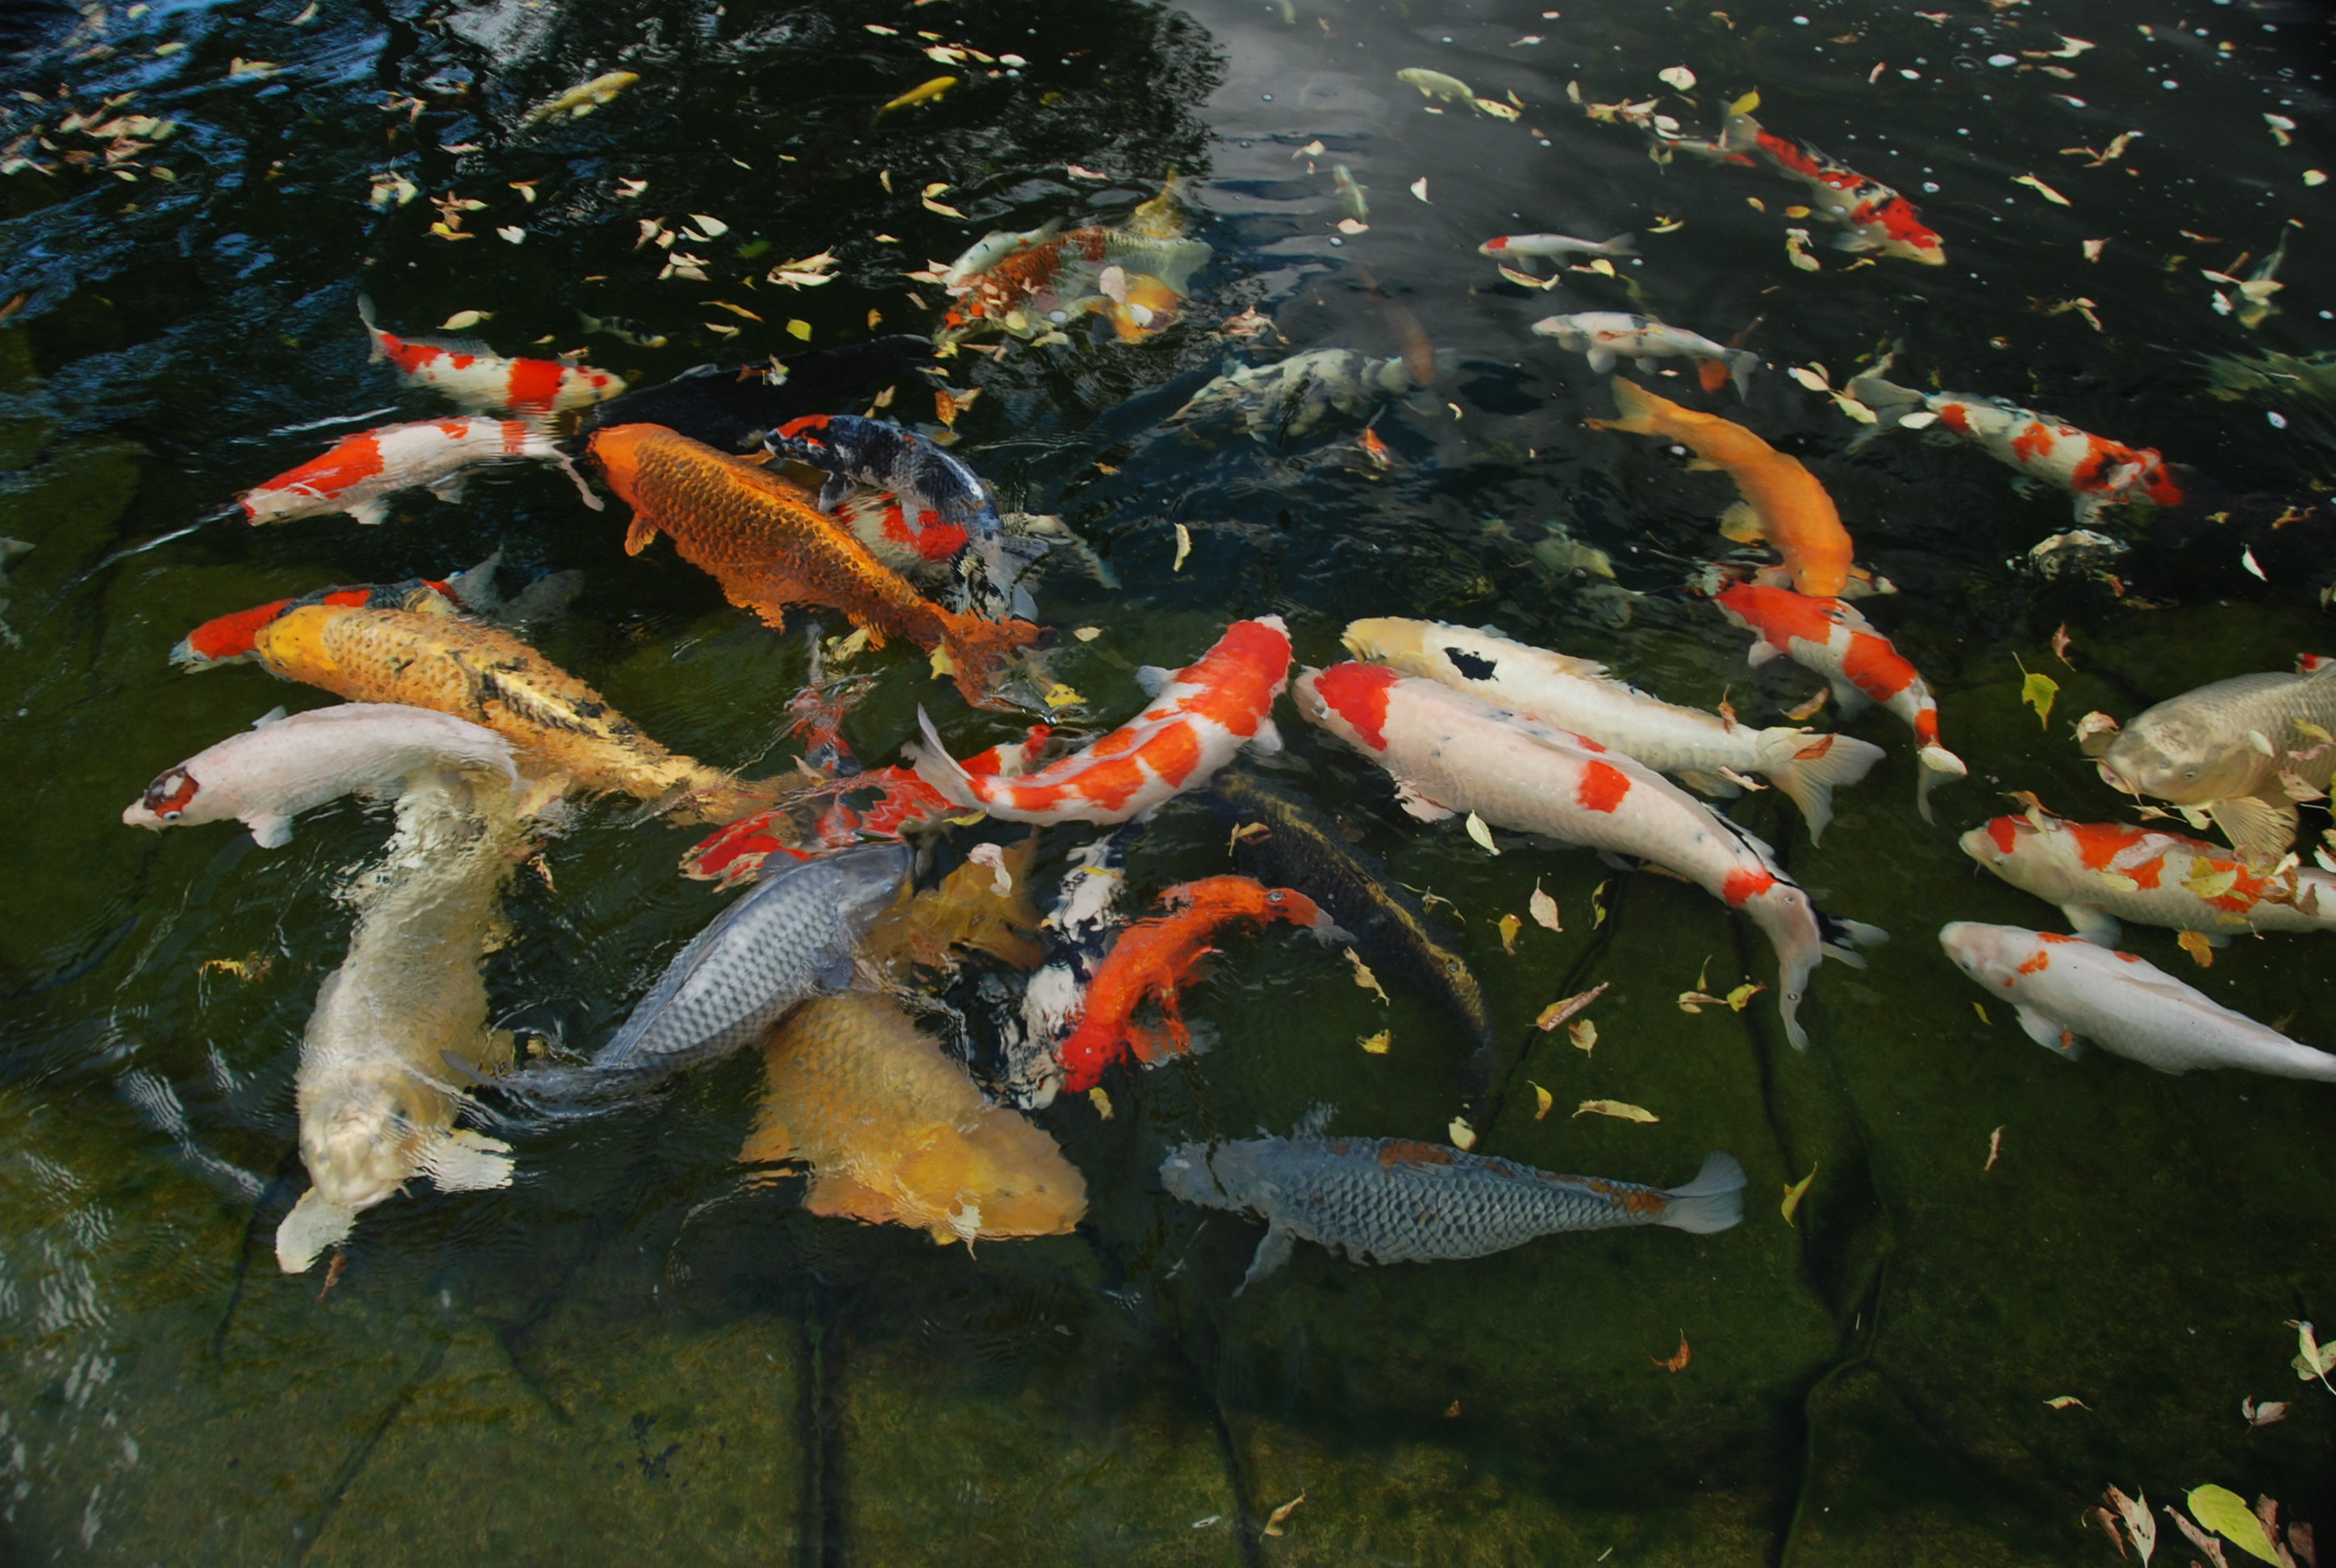 Koi acres imported japanese koi online shopping for koi for Koi fish images